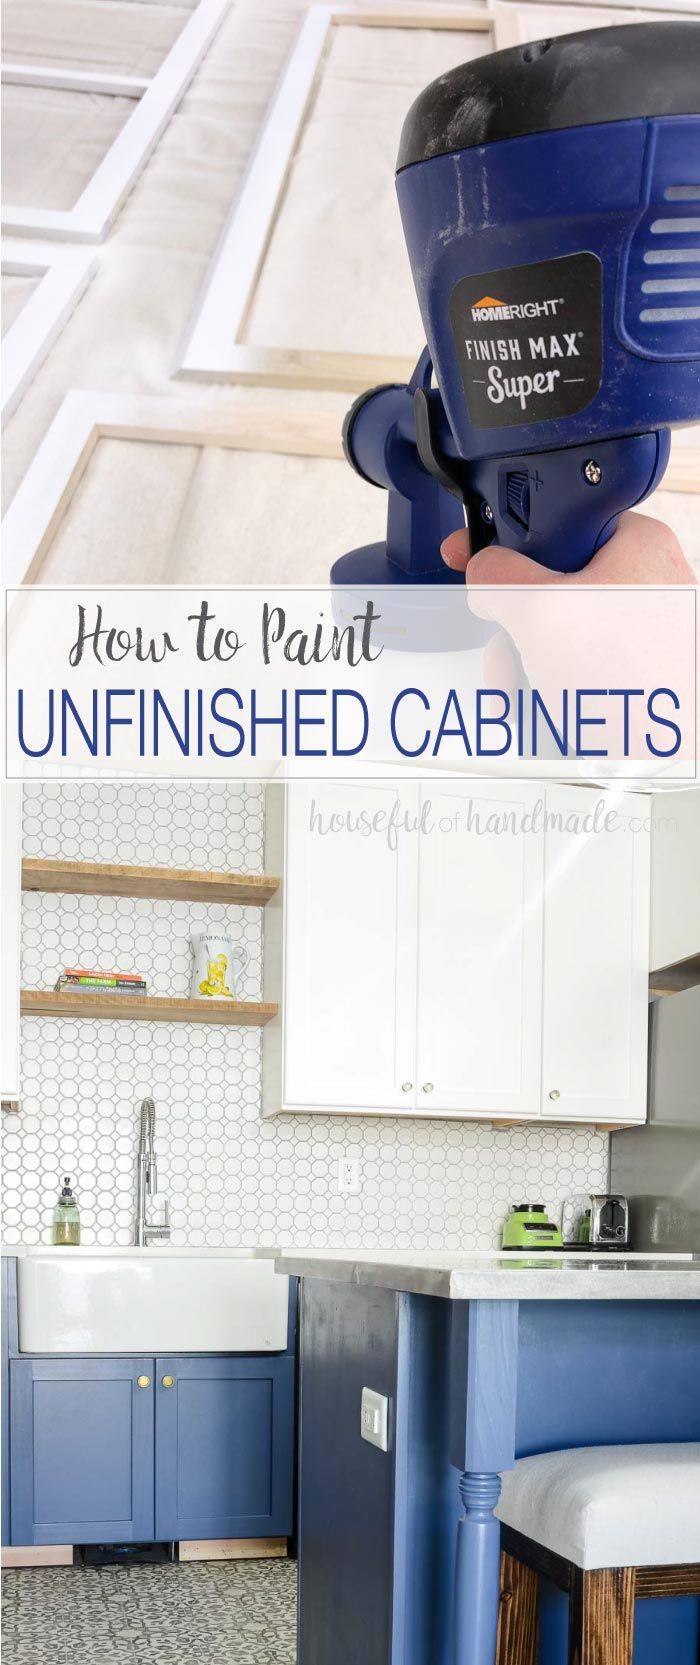 Whether You Built Your Own Cabinets Or Unfinished To Save On Money Will Need Finish